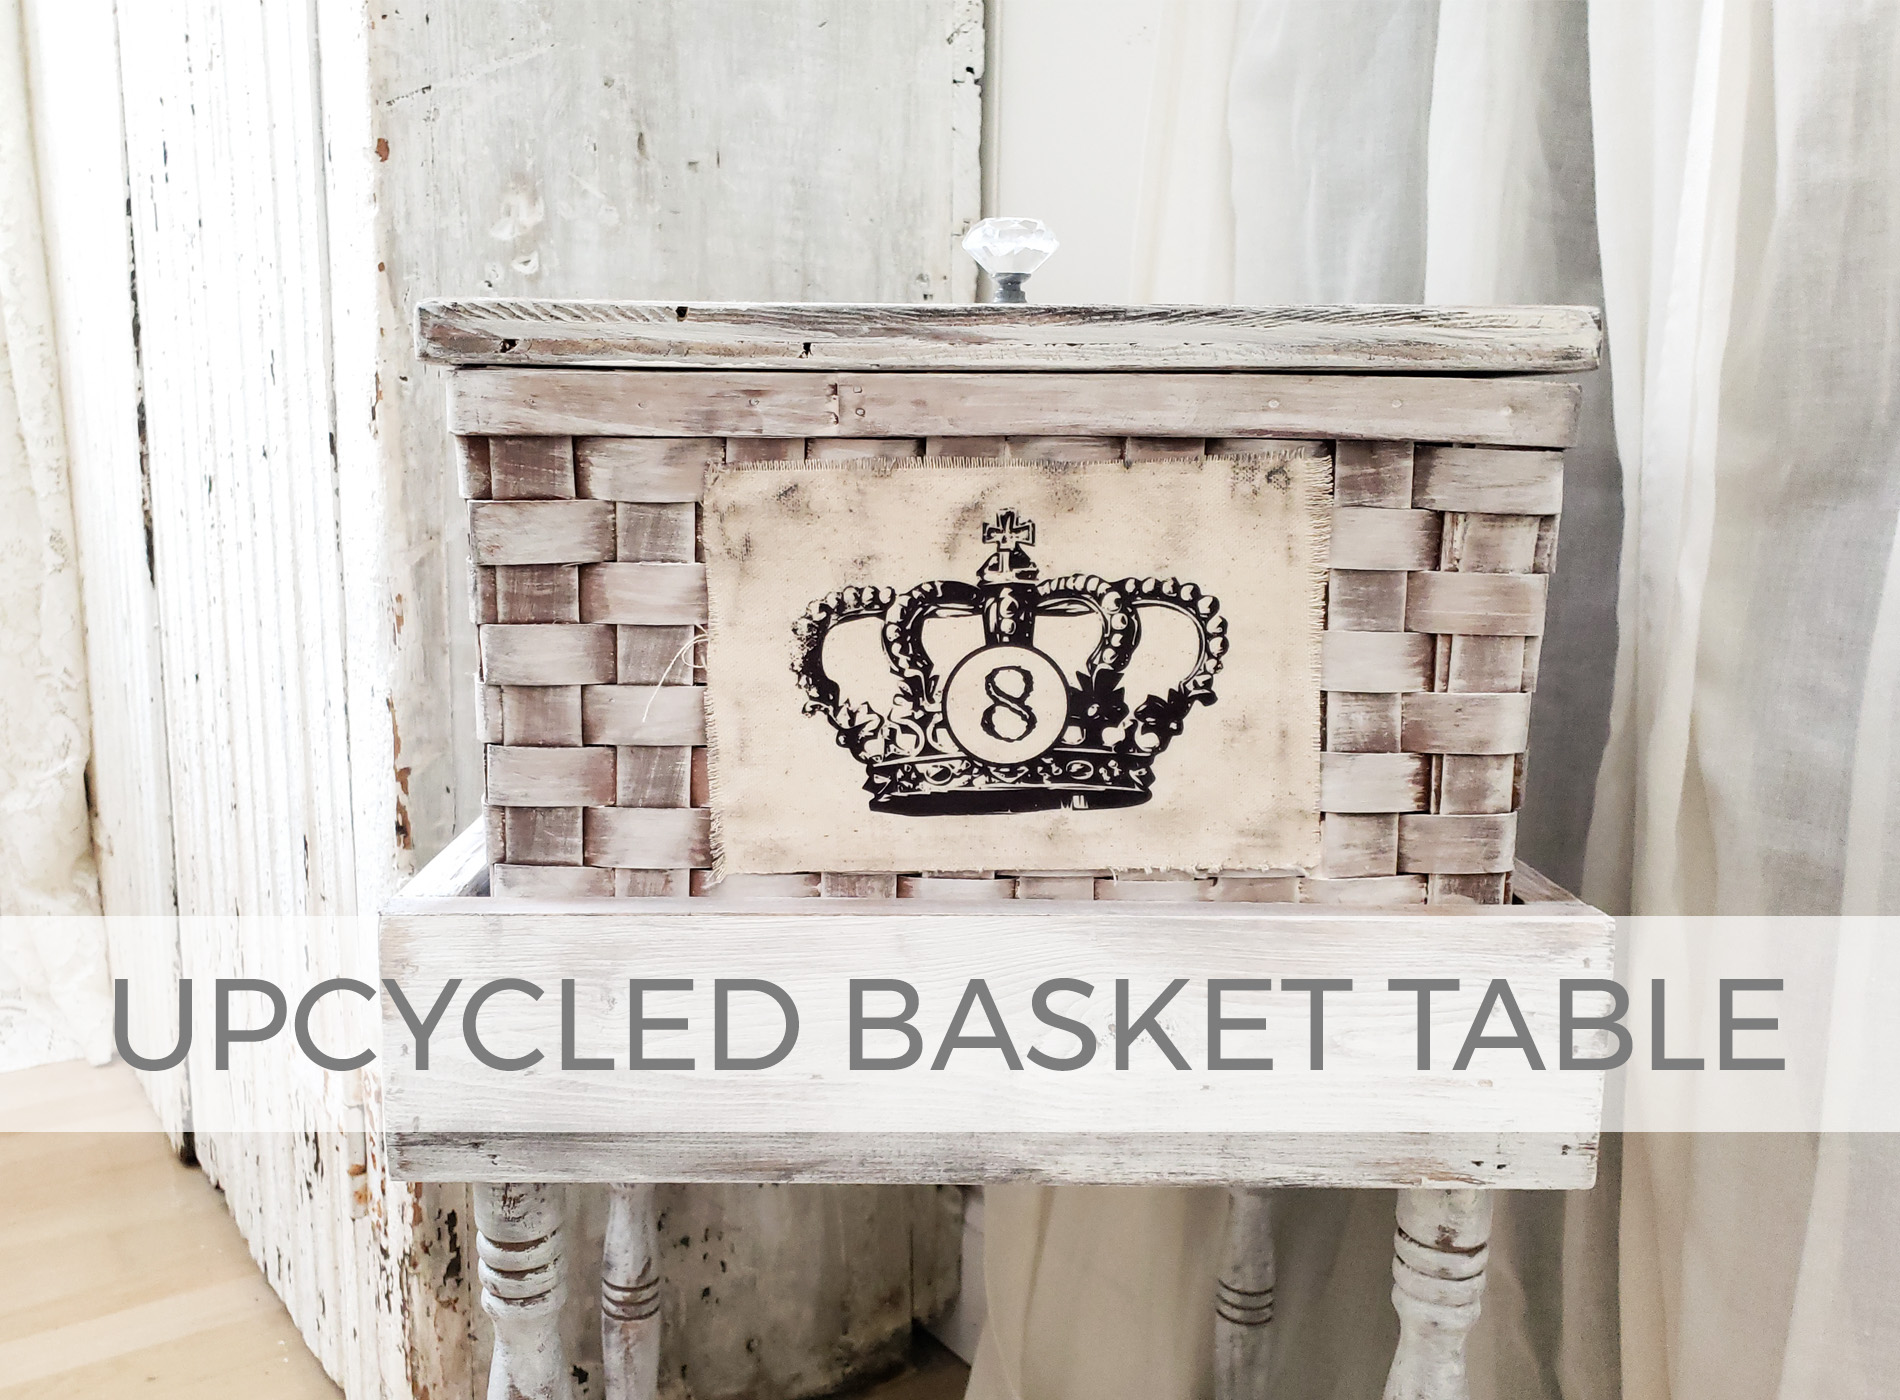 Upcycled Basket Table Built by Larissa of Prodigal Pieces | prodigalpieces.com #prodigalpieces